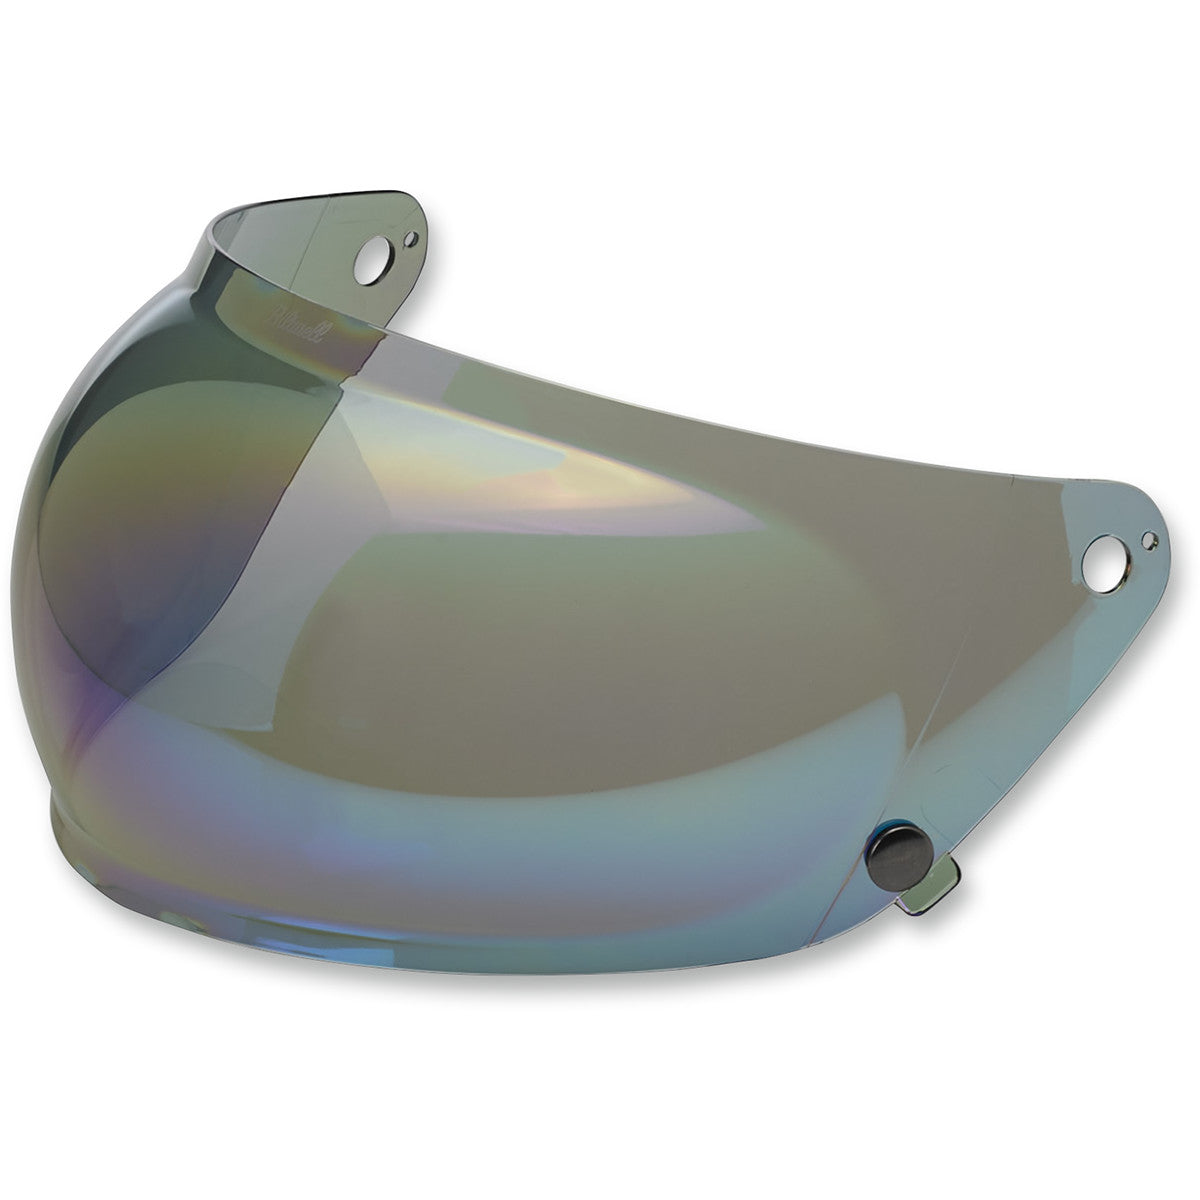 BILTWELL SHIELDS AND REPLACEMENT PARTS